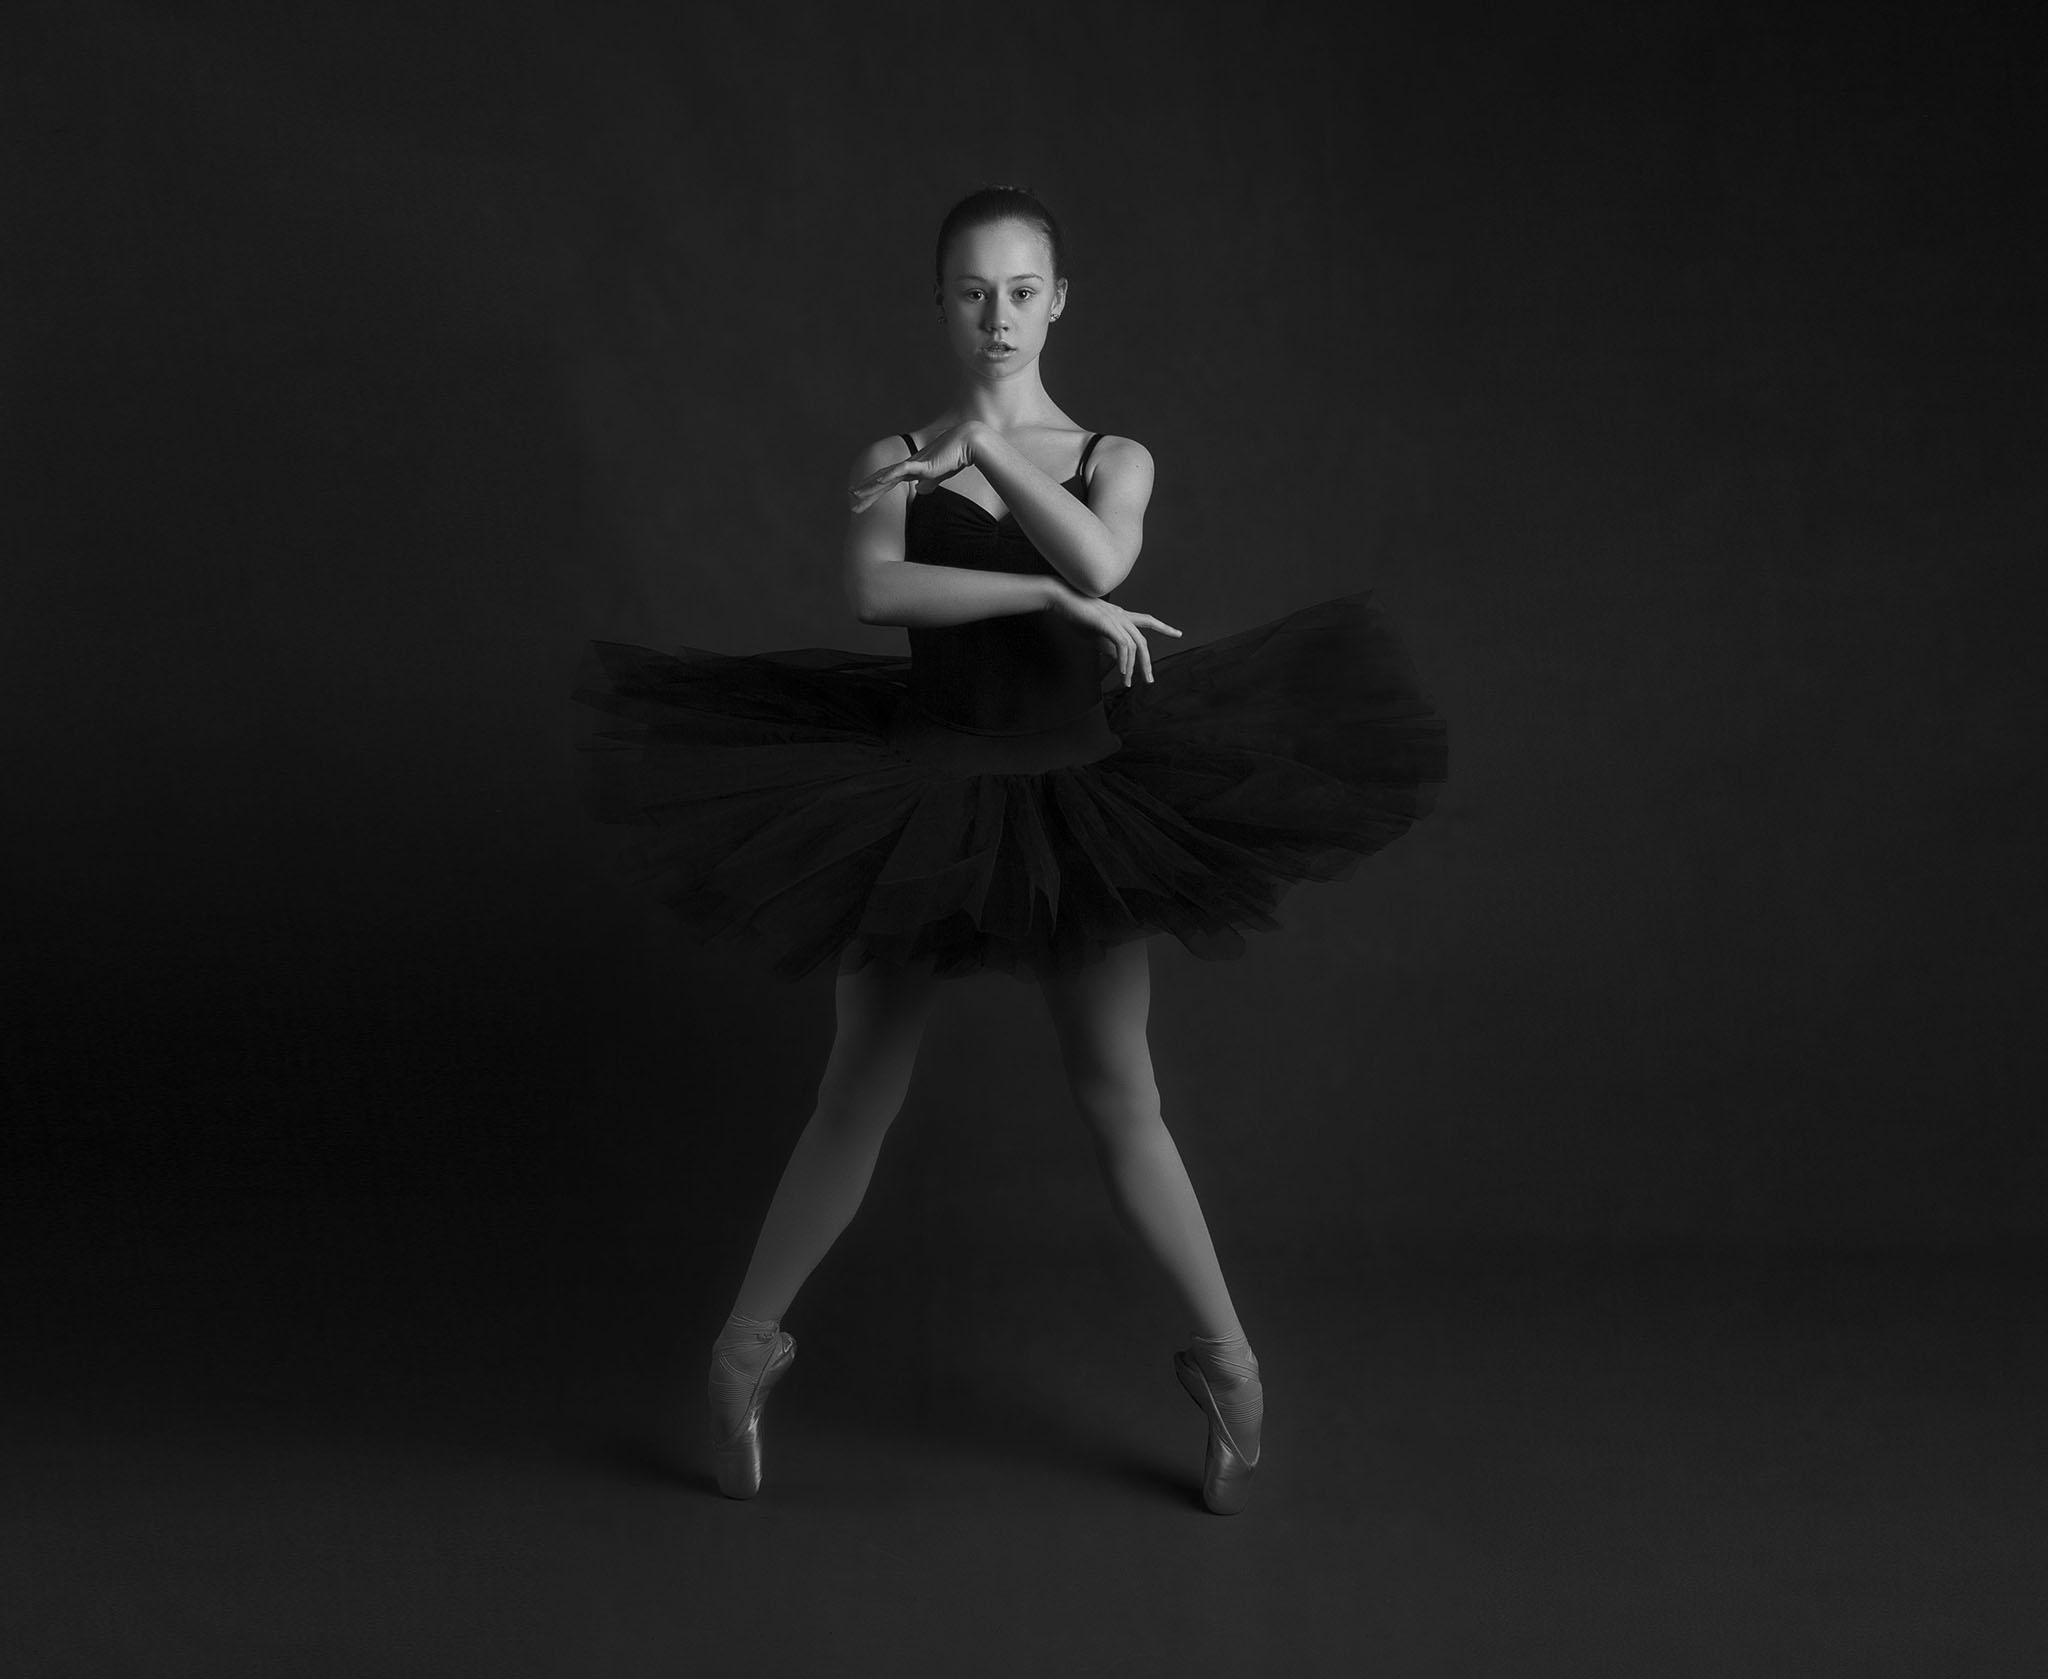 elizabethgphotography_kingslangley_hertfordshire_fineart_dance_photography_37.jpg